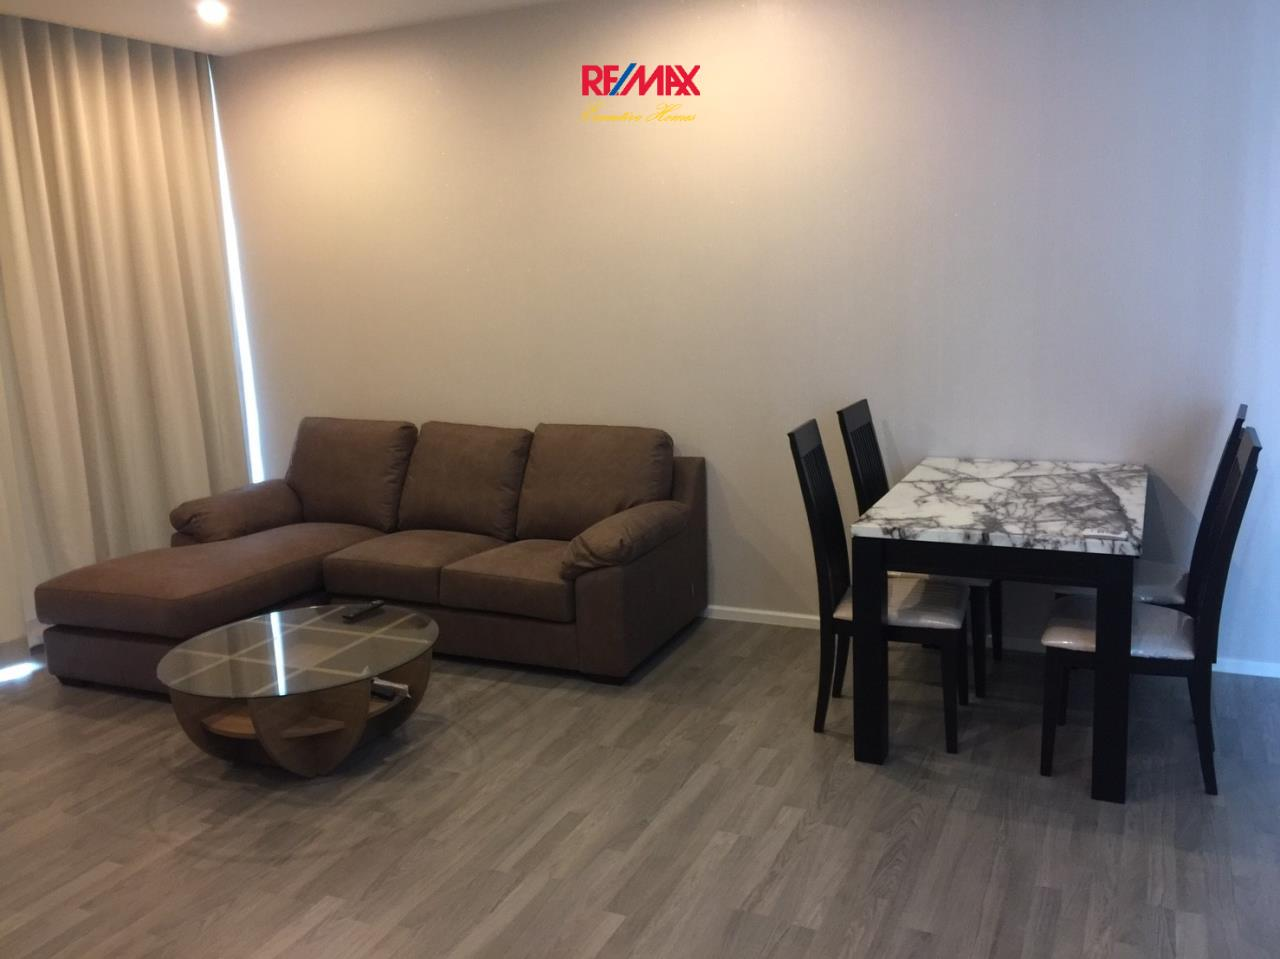 RE/MAX Executive Homes Agency's Cozy 2 Bedroom for Rent The Room 69 1